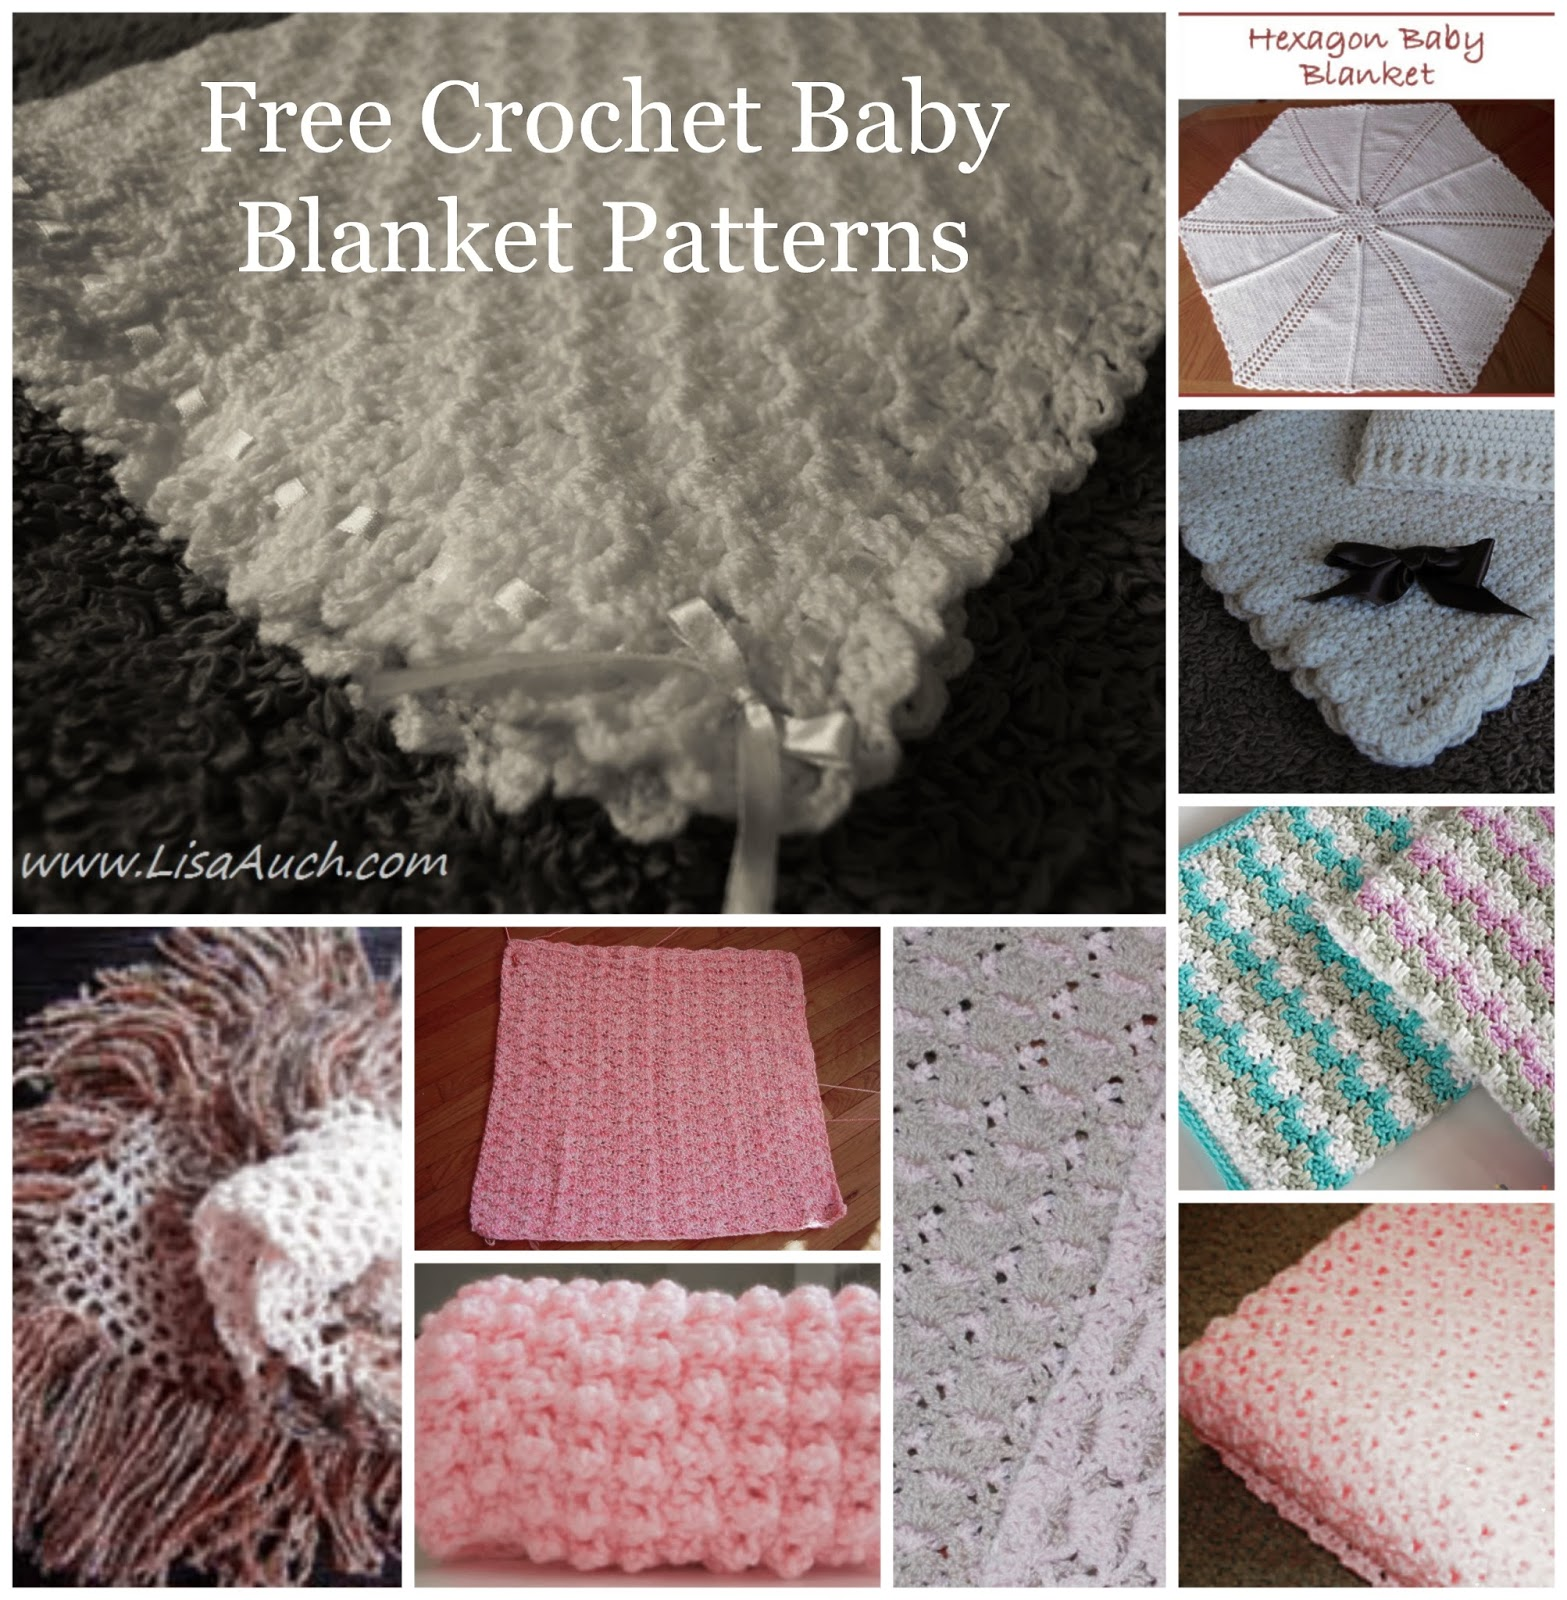 Free Online Christmas Crochet Afghan Patterns : 10+ FREE Crochet Patterns for Baby Blankets {Baby Afghan ...